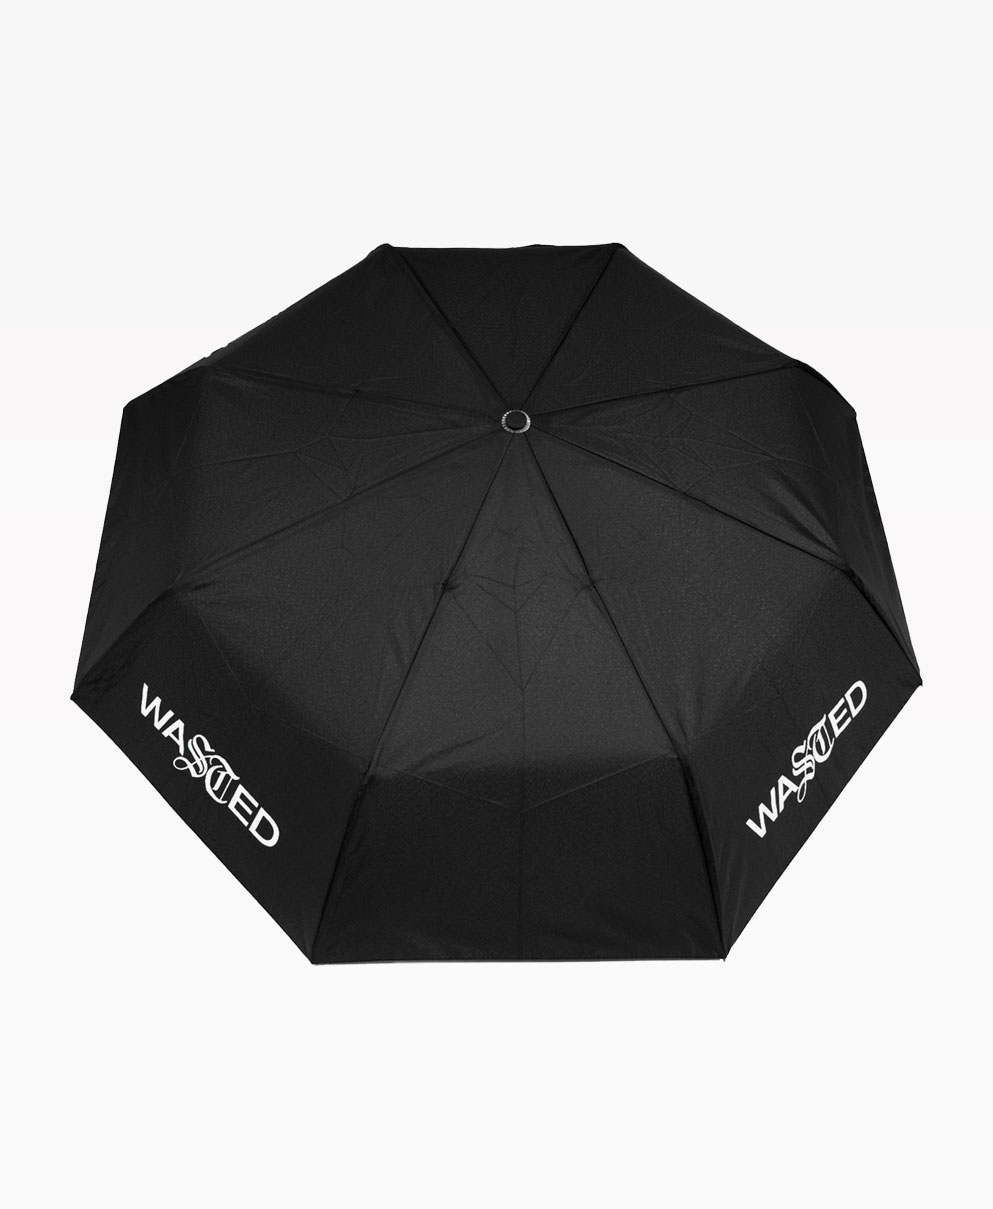 Wasted Signature Umbrella Front